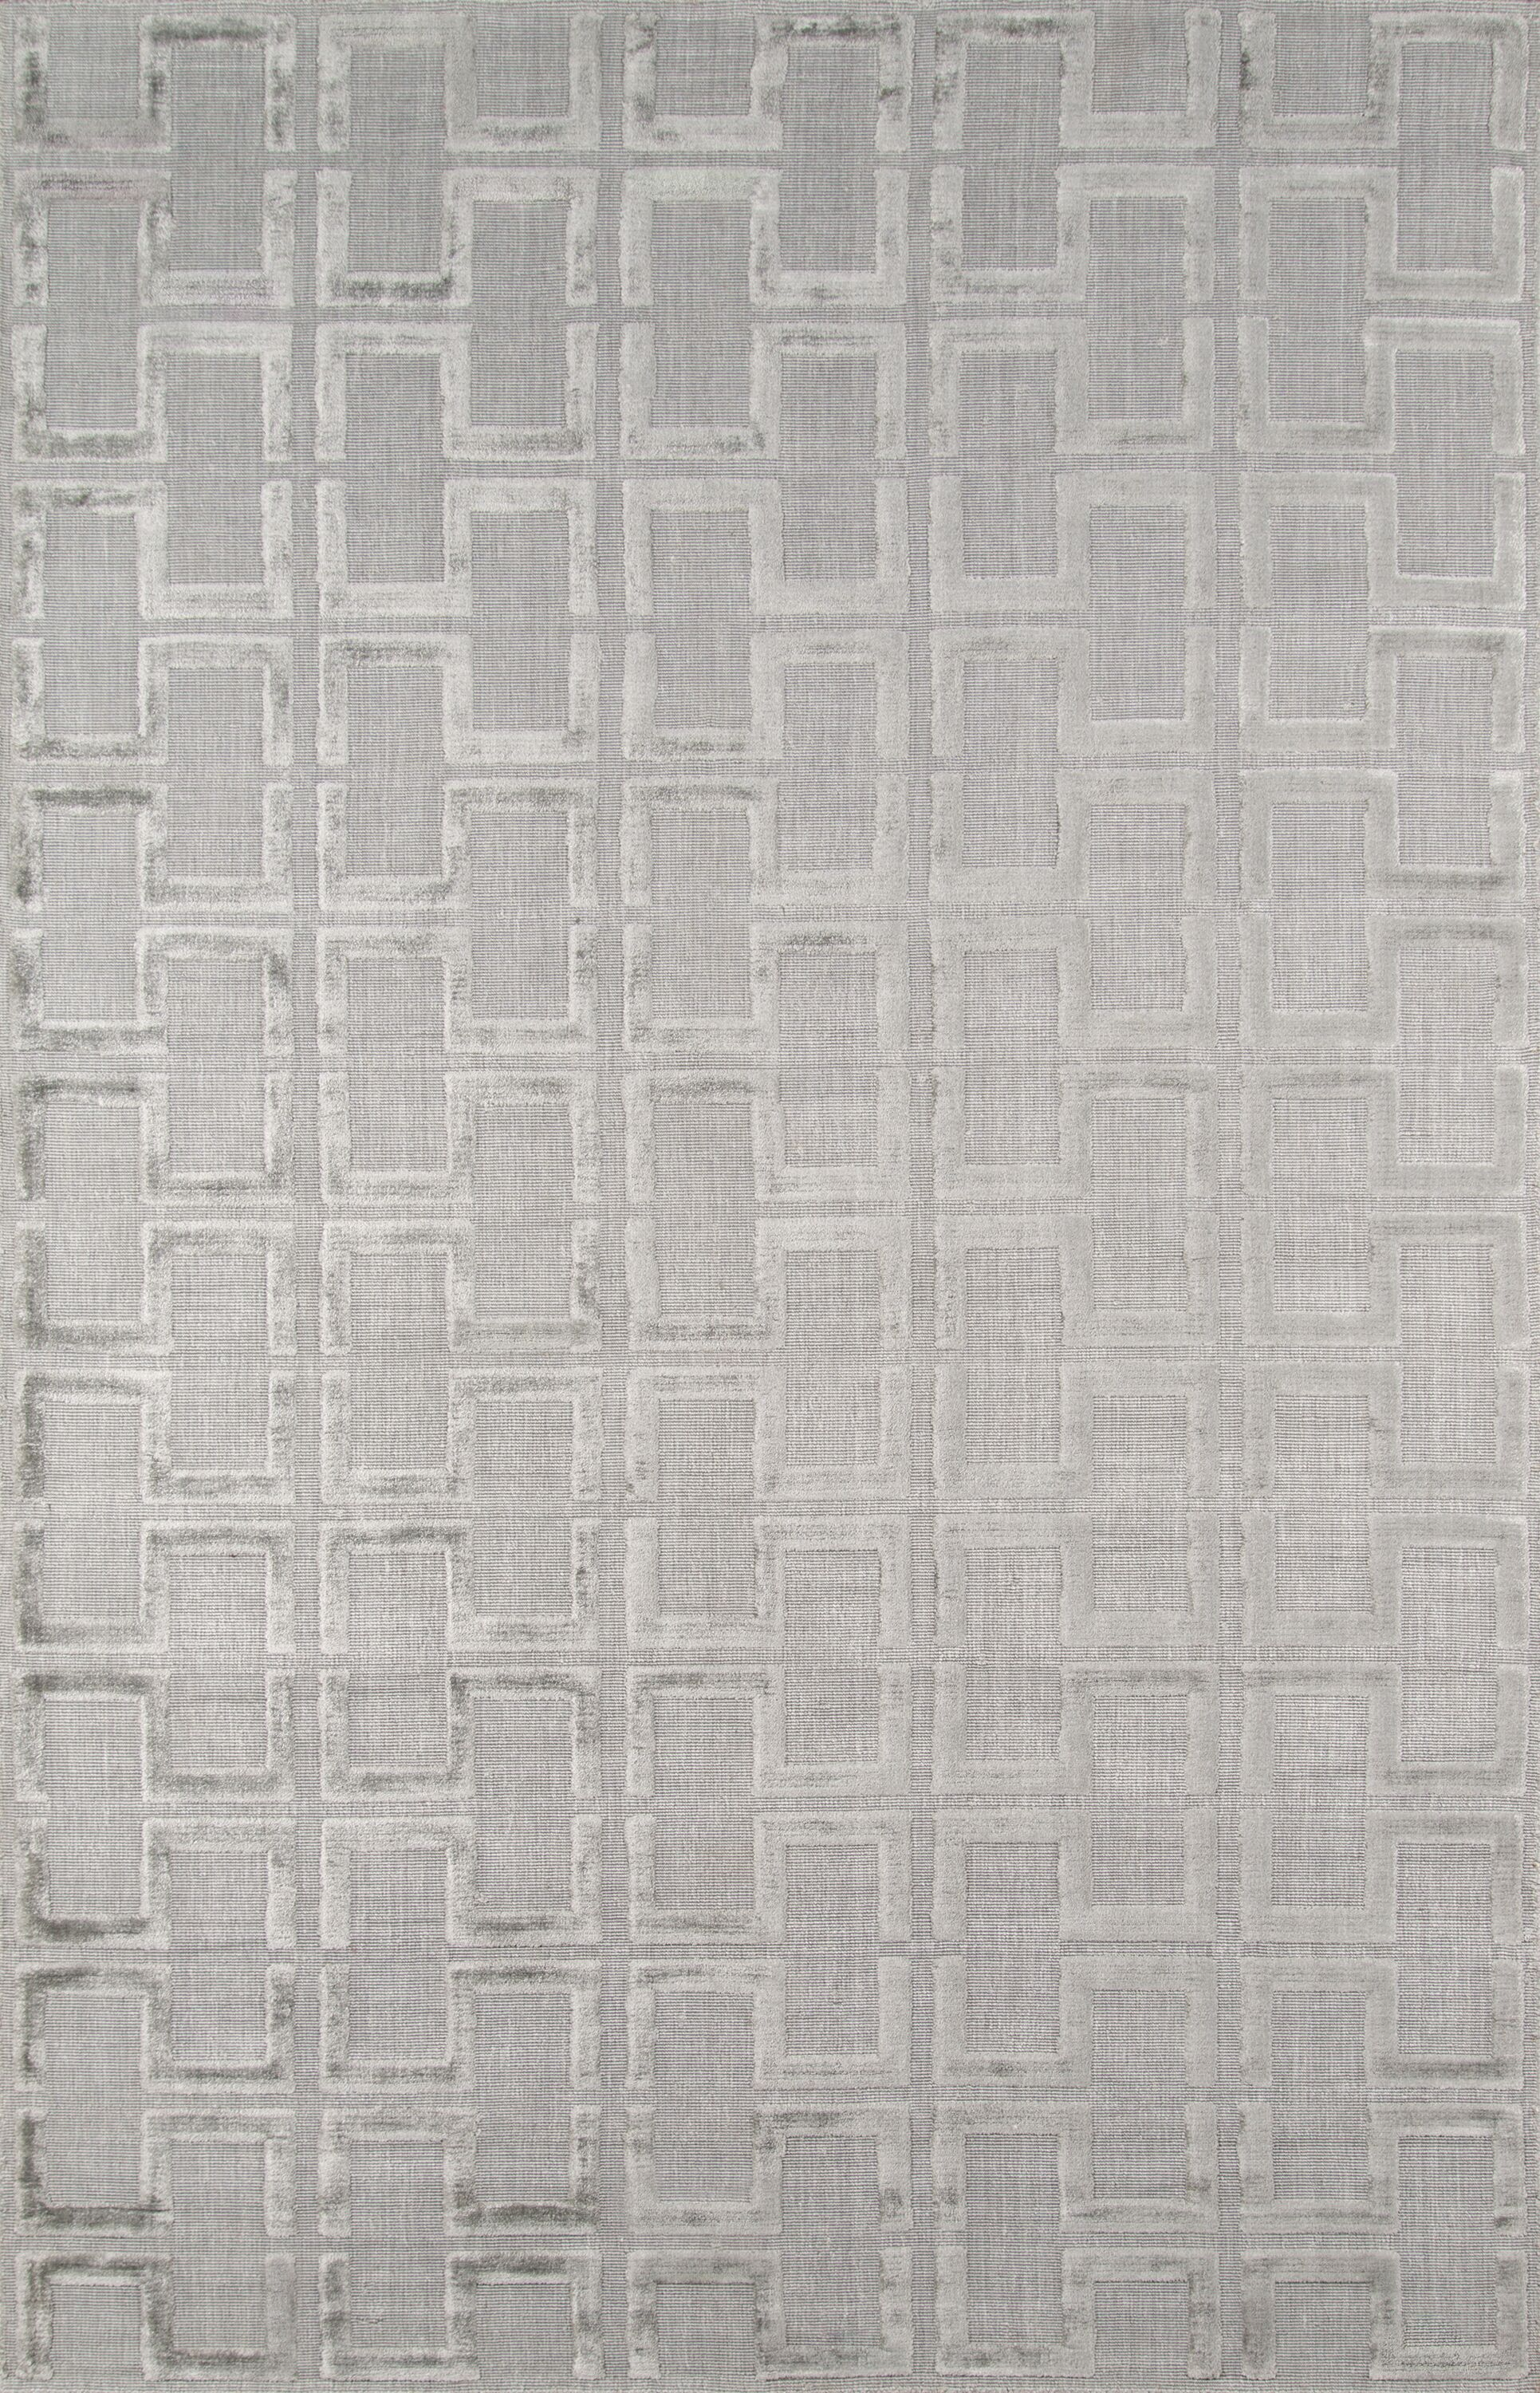 Roy Hand-Knotted Gray Area Rug Rug Size: Rectangle 9'6